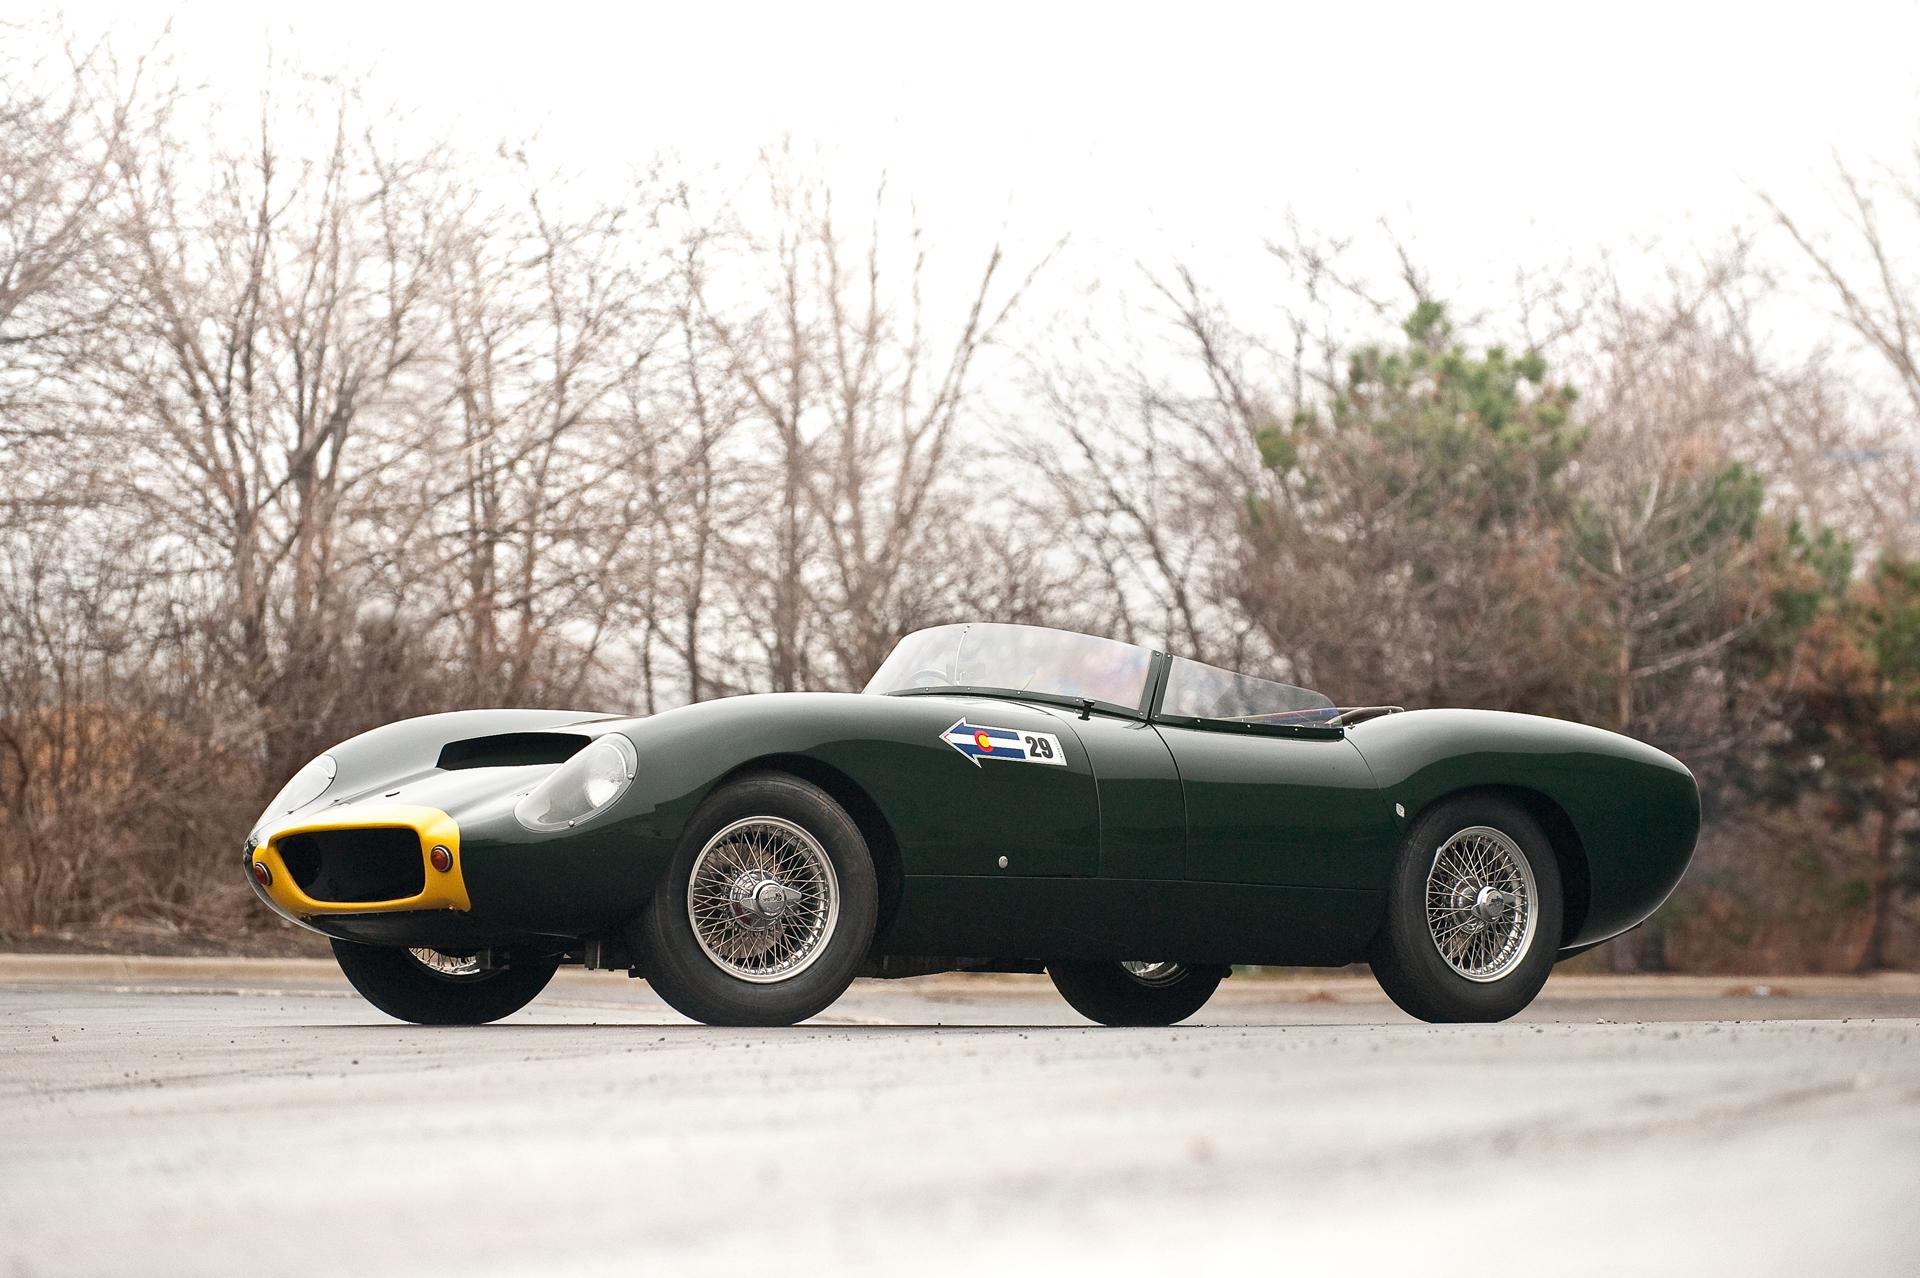 1959 Lister Costin Jaguar photos